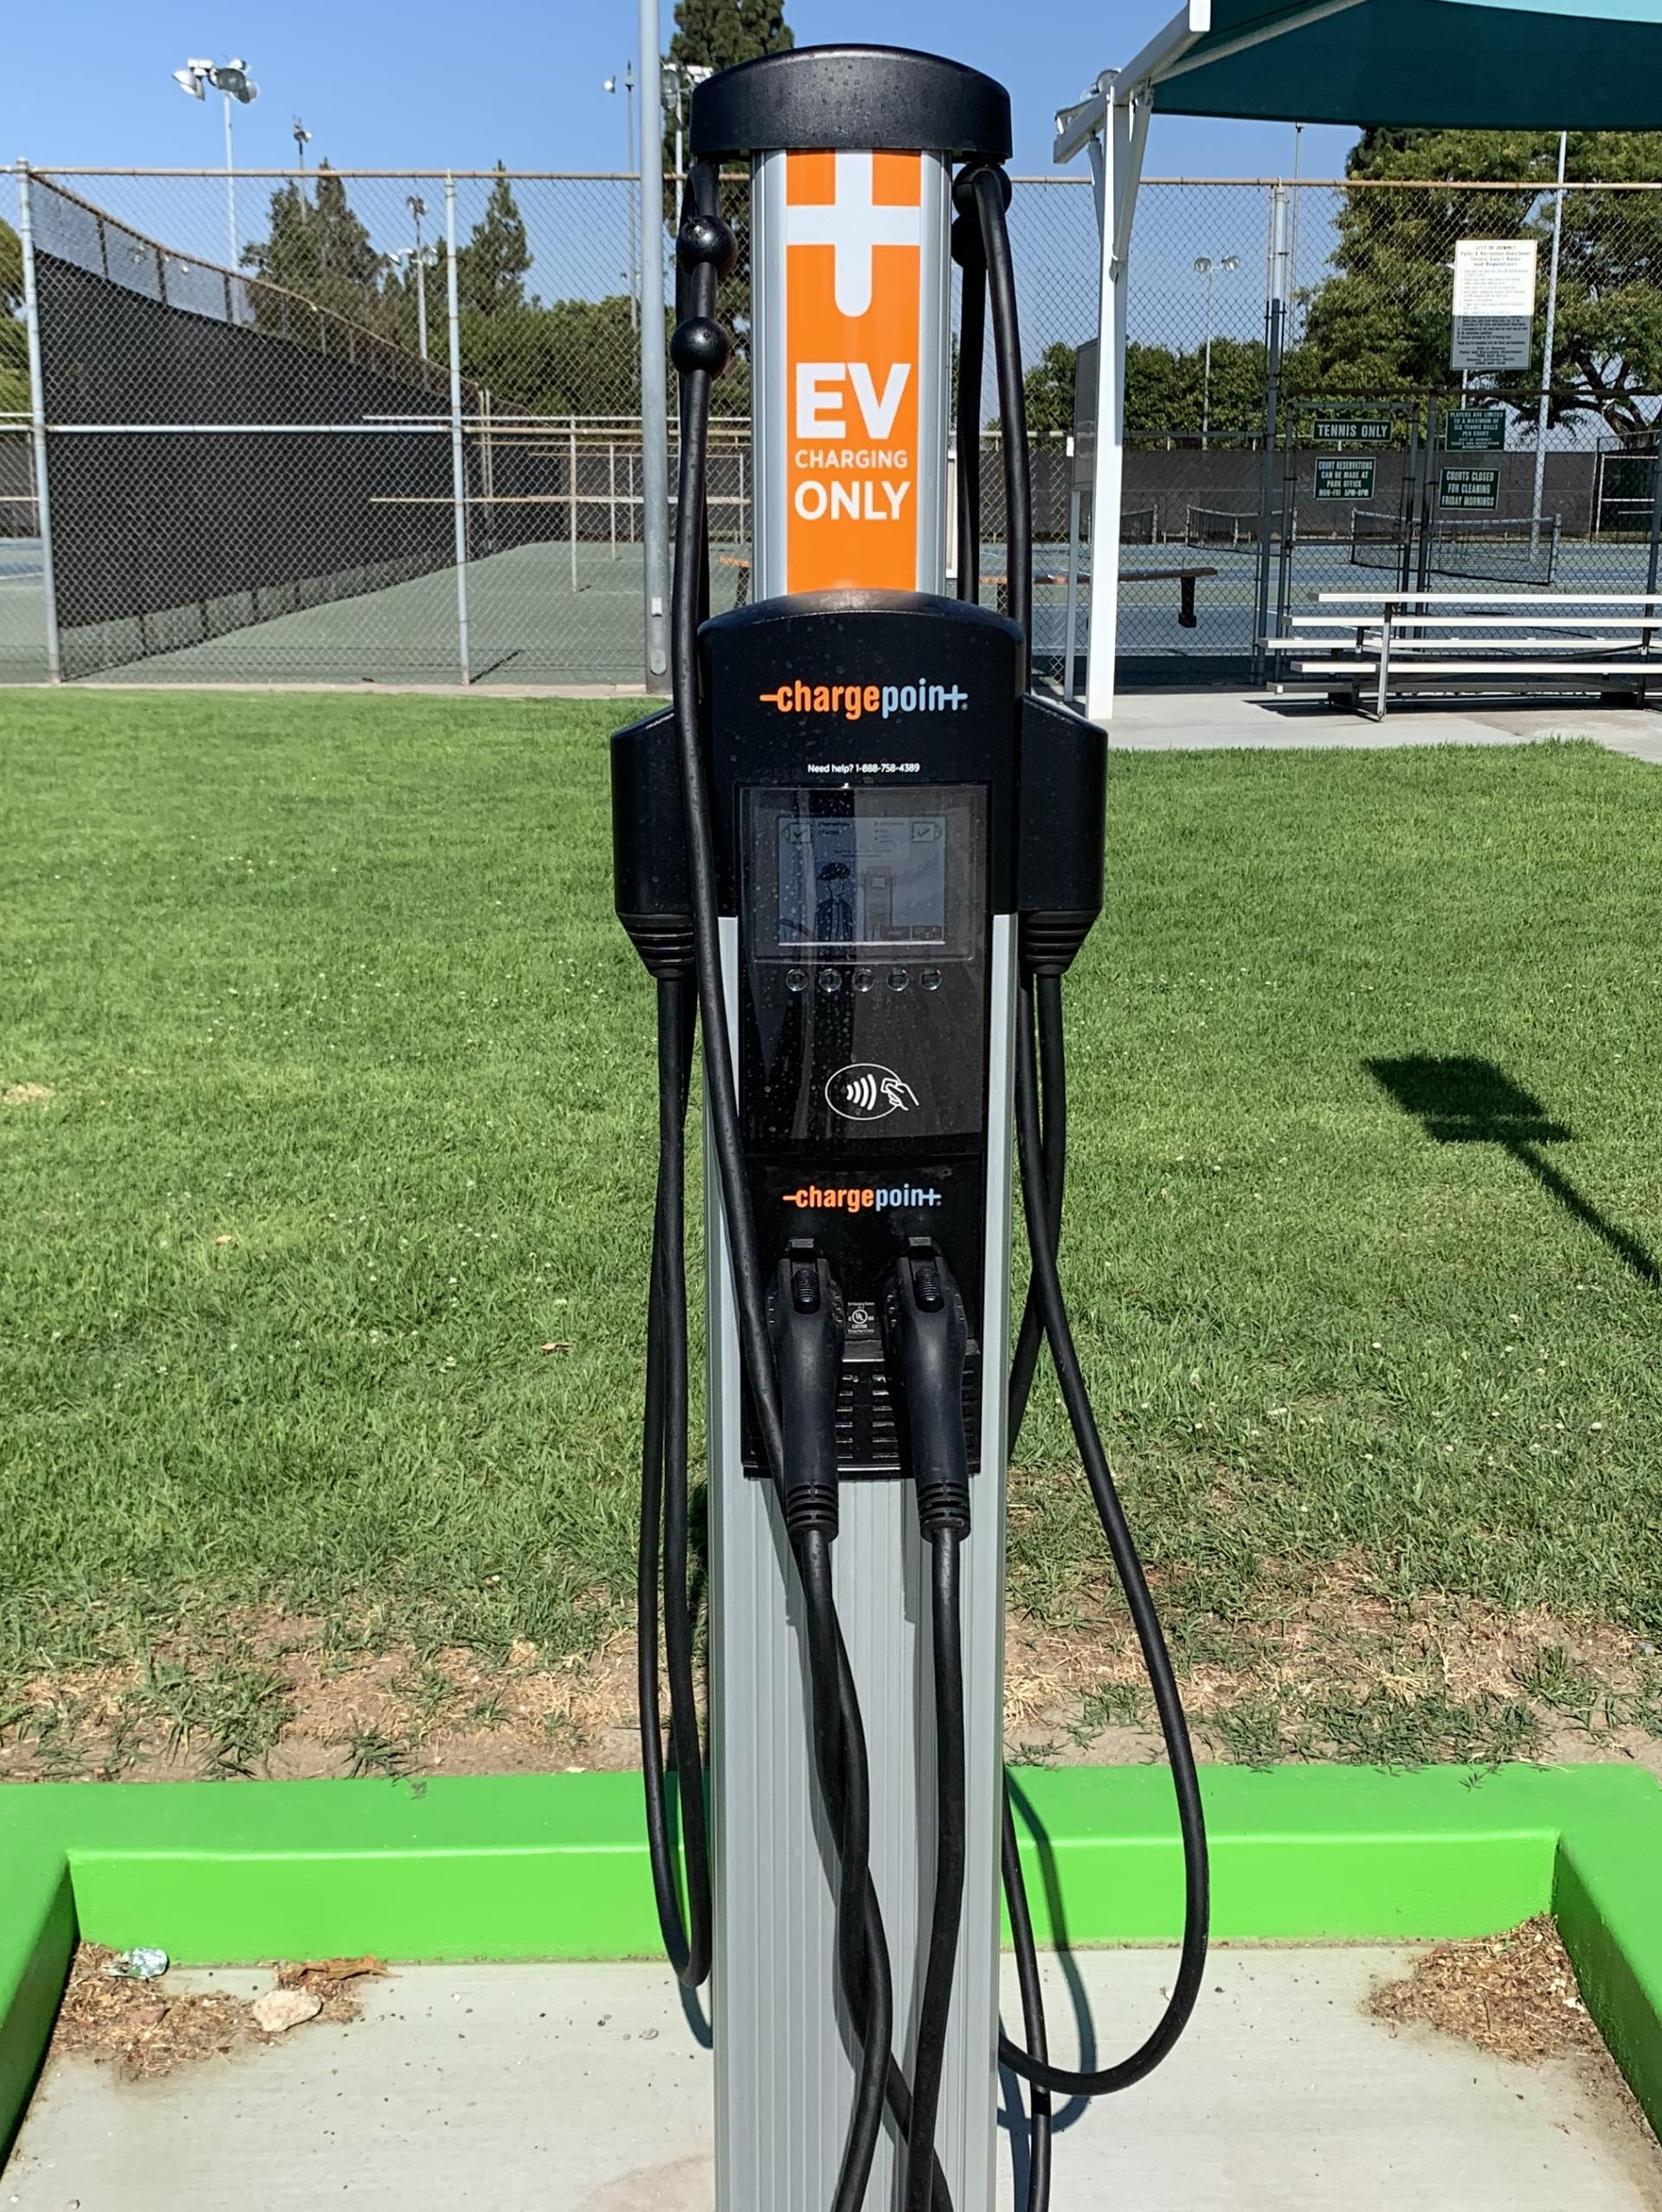 City Installs Additional Electrical Vehicle Charging Stations